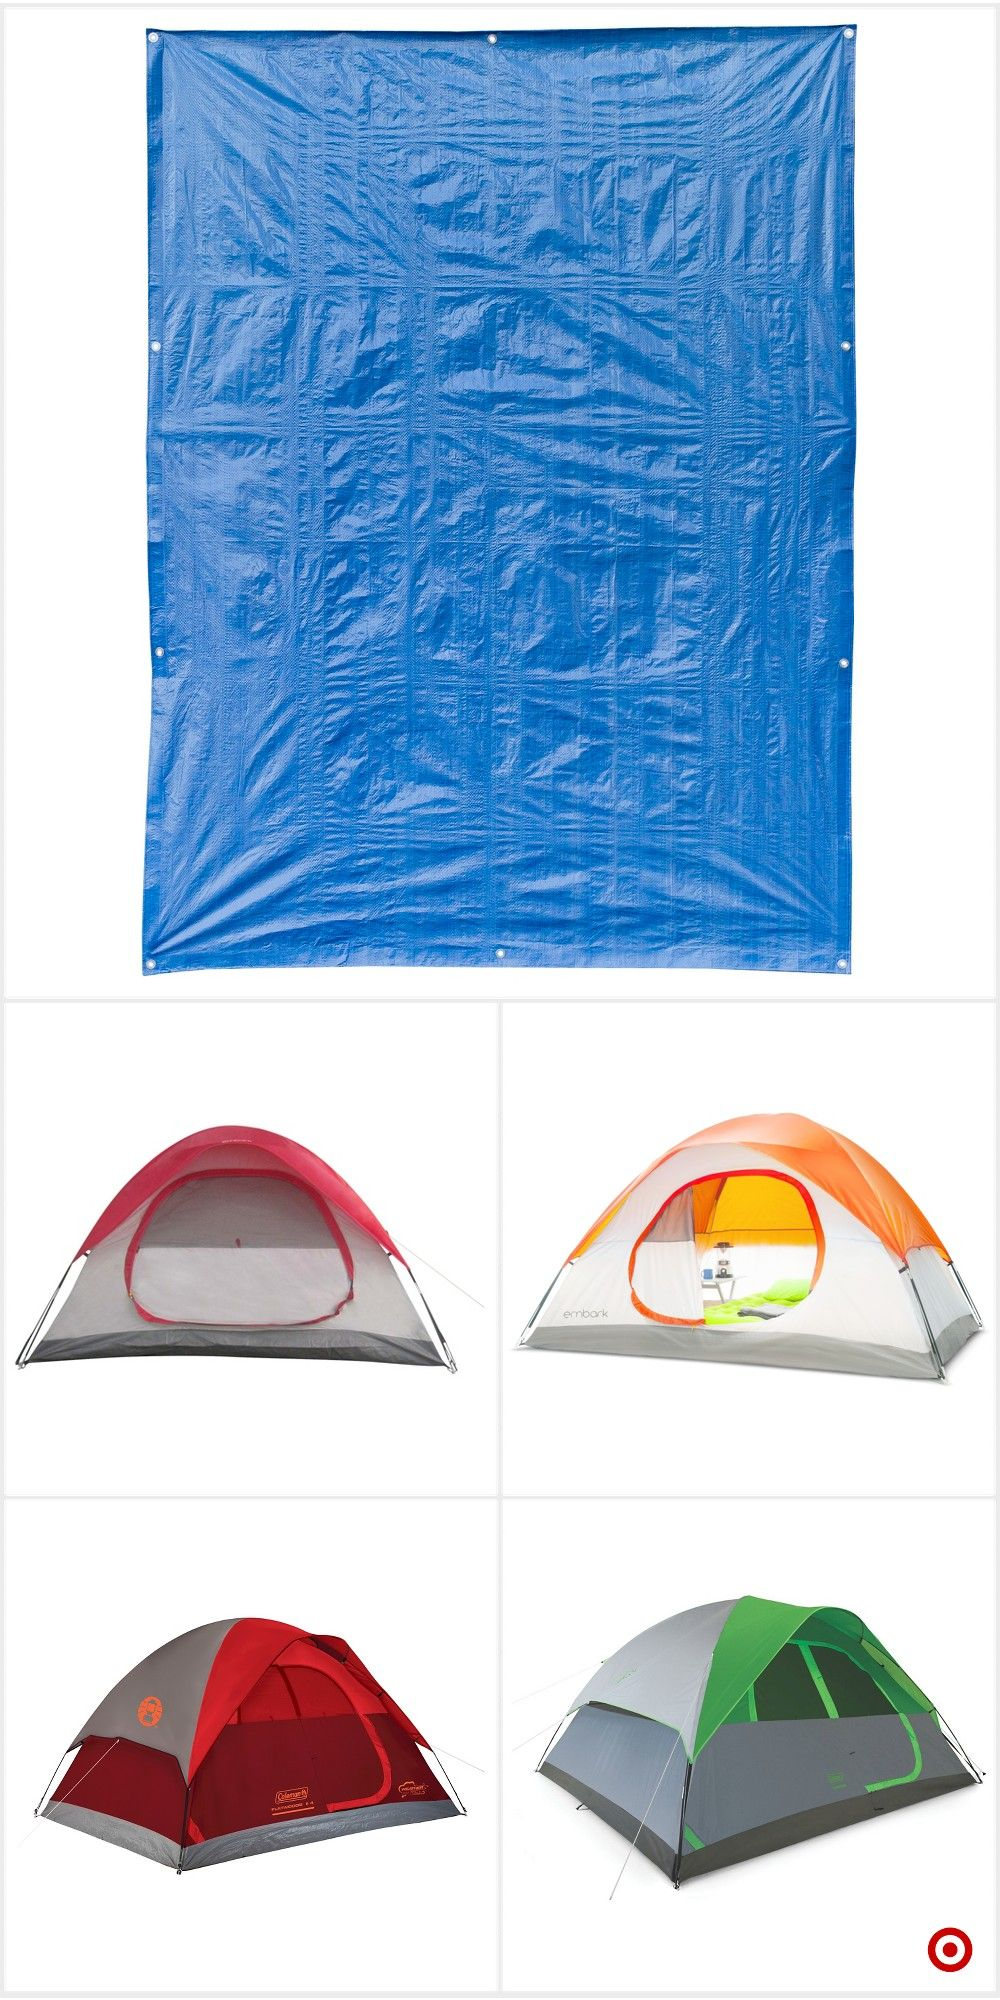 34cfd0ad079 Shop Target for camping tents you will love at great low prices. Free  shipping on orders of $35+ or free same-day pick-up in store.